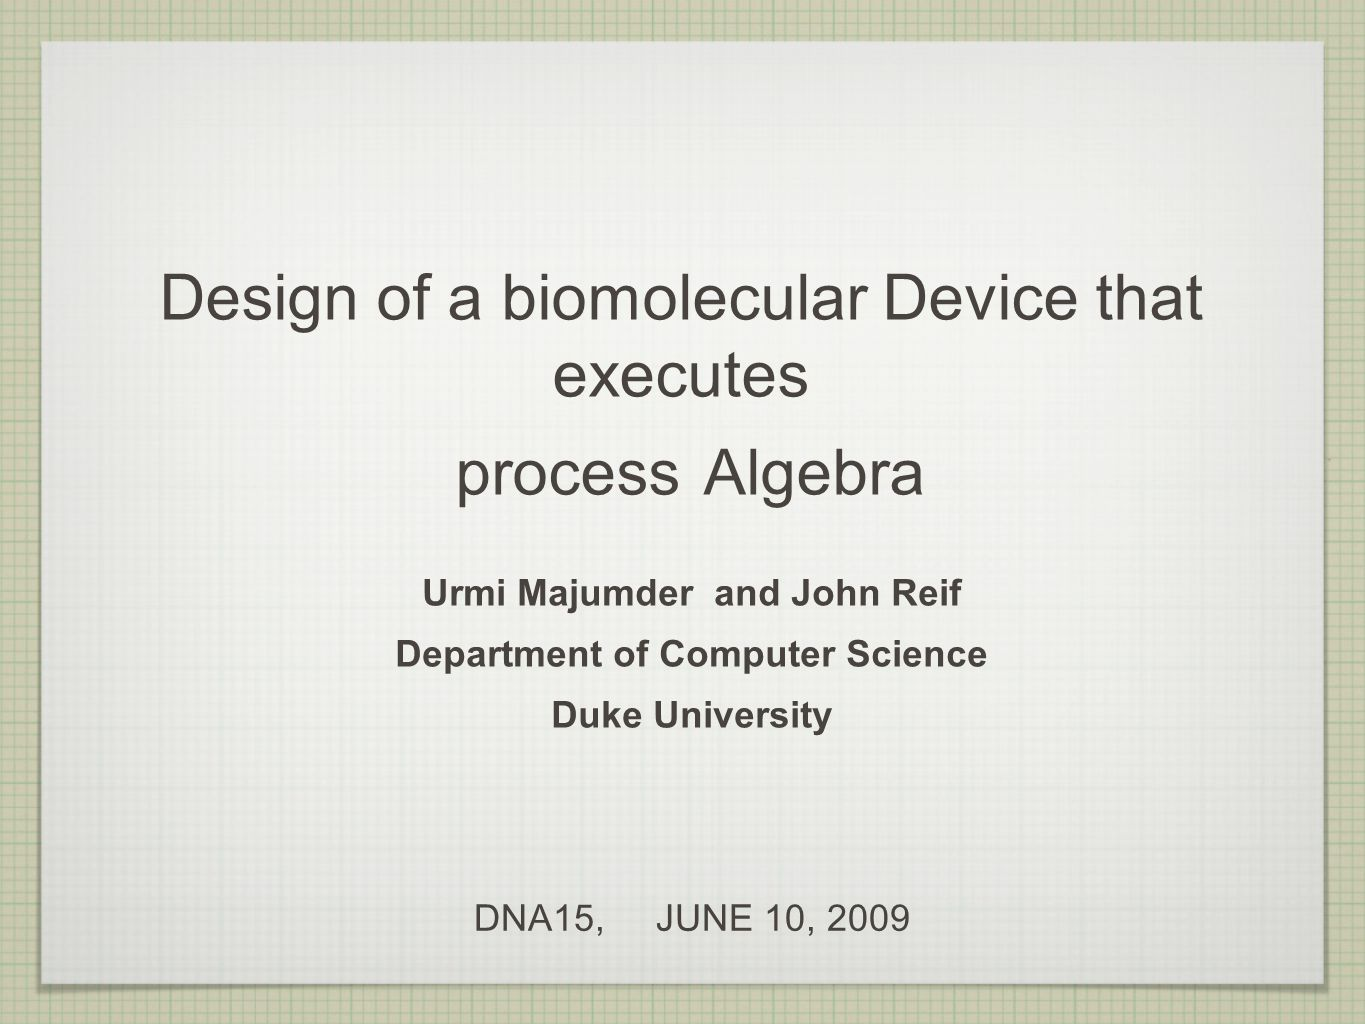 Design of a biomolecular Device that executes process Algebra Urmi Majumder and John Reif Department of Computer Science Duke University DNA15, JUNE 10, 2009